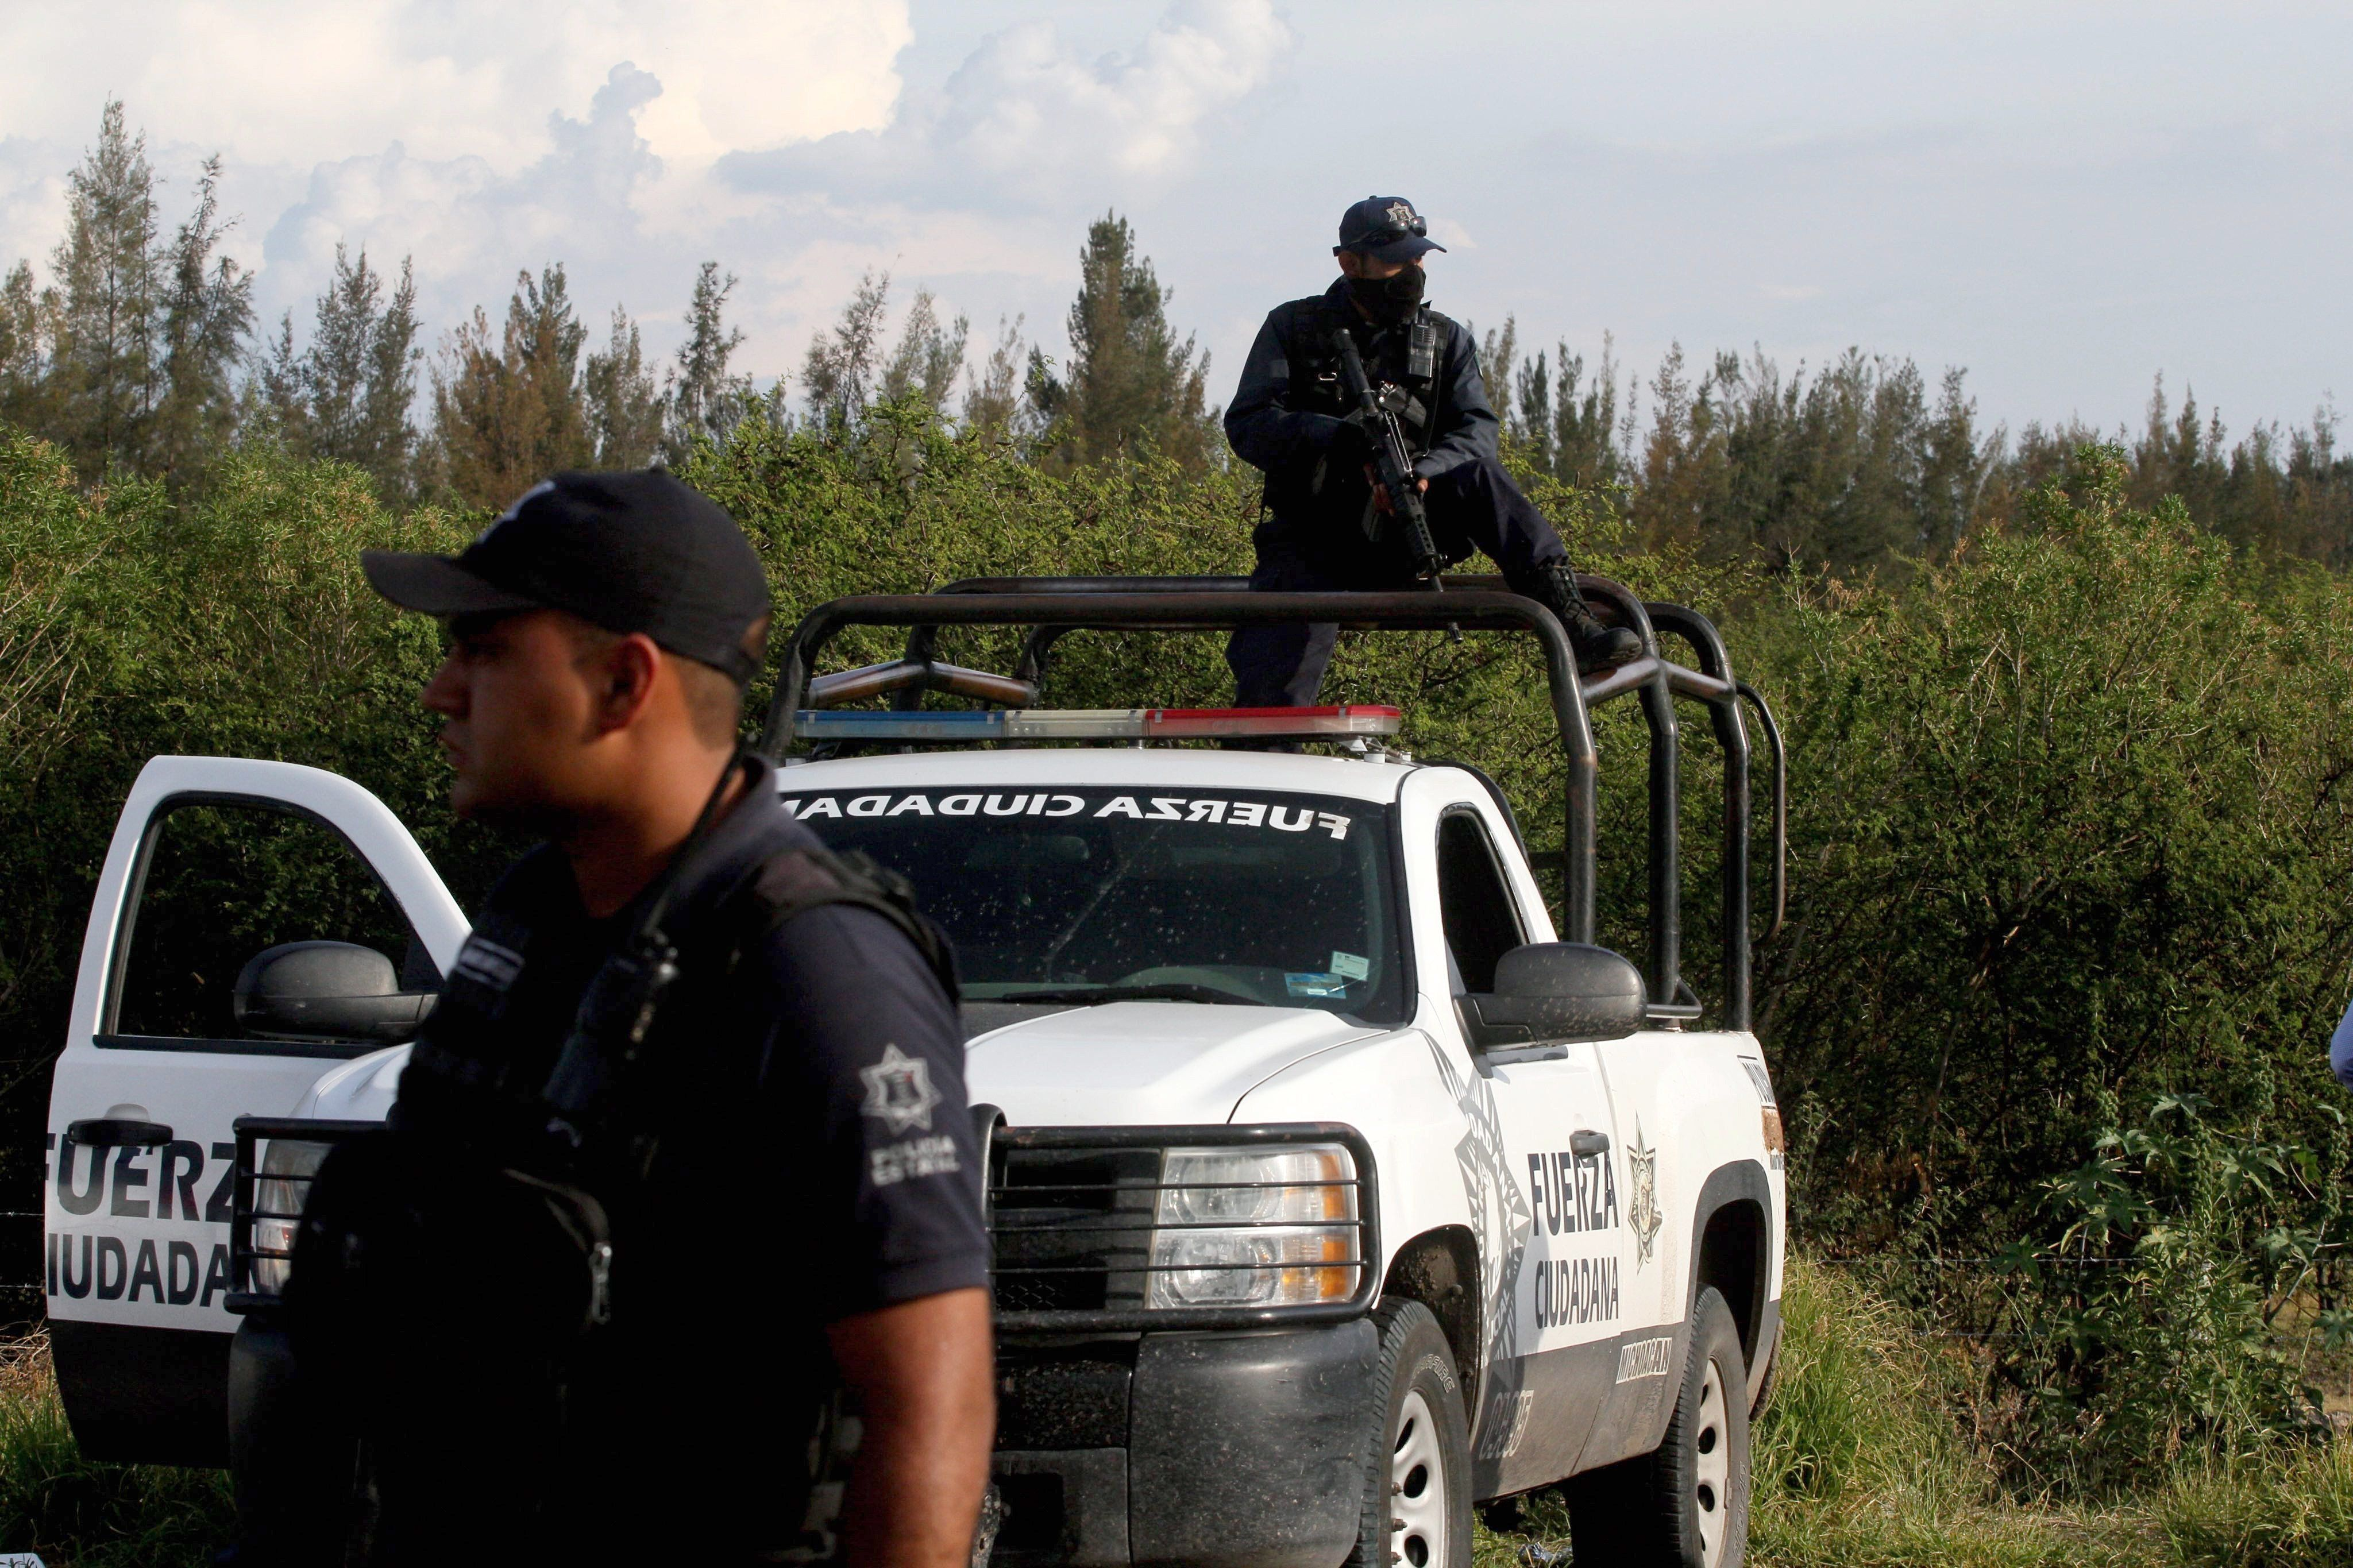 Members of the State police stand guard at the entrance of the ranch where gunmen took cover during an intense gun battle with the police, along the Jalisco-Michoacan highway in Vista Hermosa, Michoacan State, on May 22, 2015. At least 37 people were killed in the gunfight in Mexico's troubled western state of Michoacan, in one of the bloodiest clashes in the country's drug war. Two police officers also died in the shootout in the municipality of Tanhuato, near the border with Jalisco state, a federal government official told AFP. Michoacan and Jalisco have endured some of the worst violence in a drug war that began to escalate in 2006, when the government deployed troops to combat cartels. More than 80,000 have been killed and another 22,000 gone missing nationwide in the past nine years.  AFP PHOTO / HECTOR GUERRERO        (Photo credit should read HECTOR GUERRERO/AFP/Getty Images)